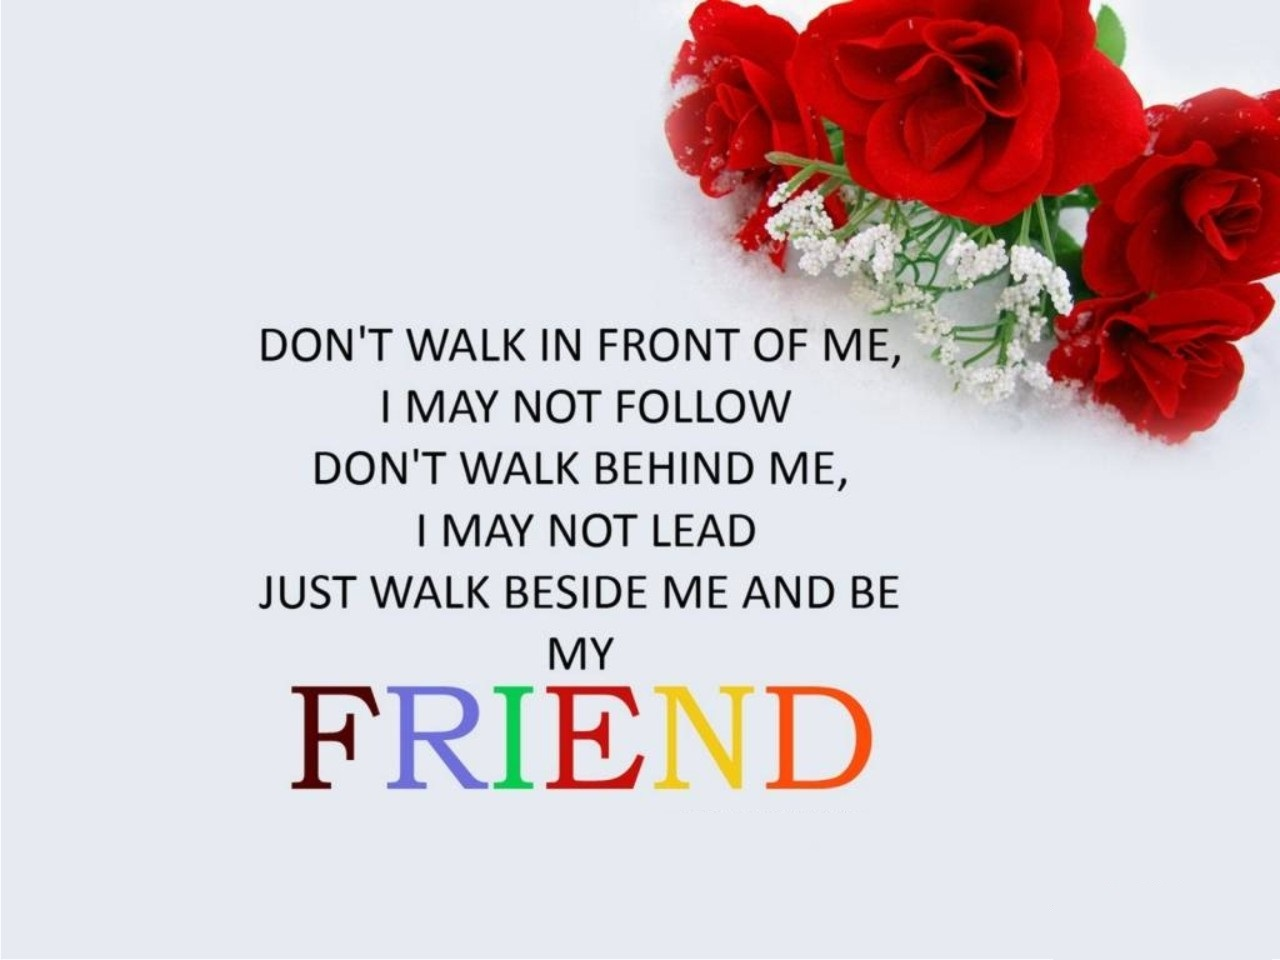 Khushi For Life Friendship Wishes Greetings Ecards To Good Friends